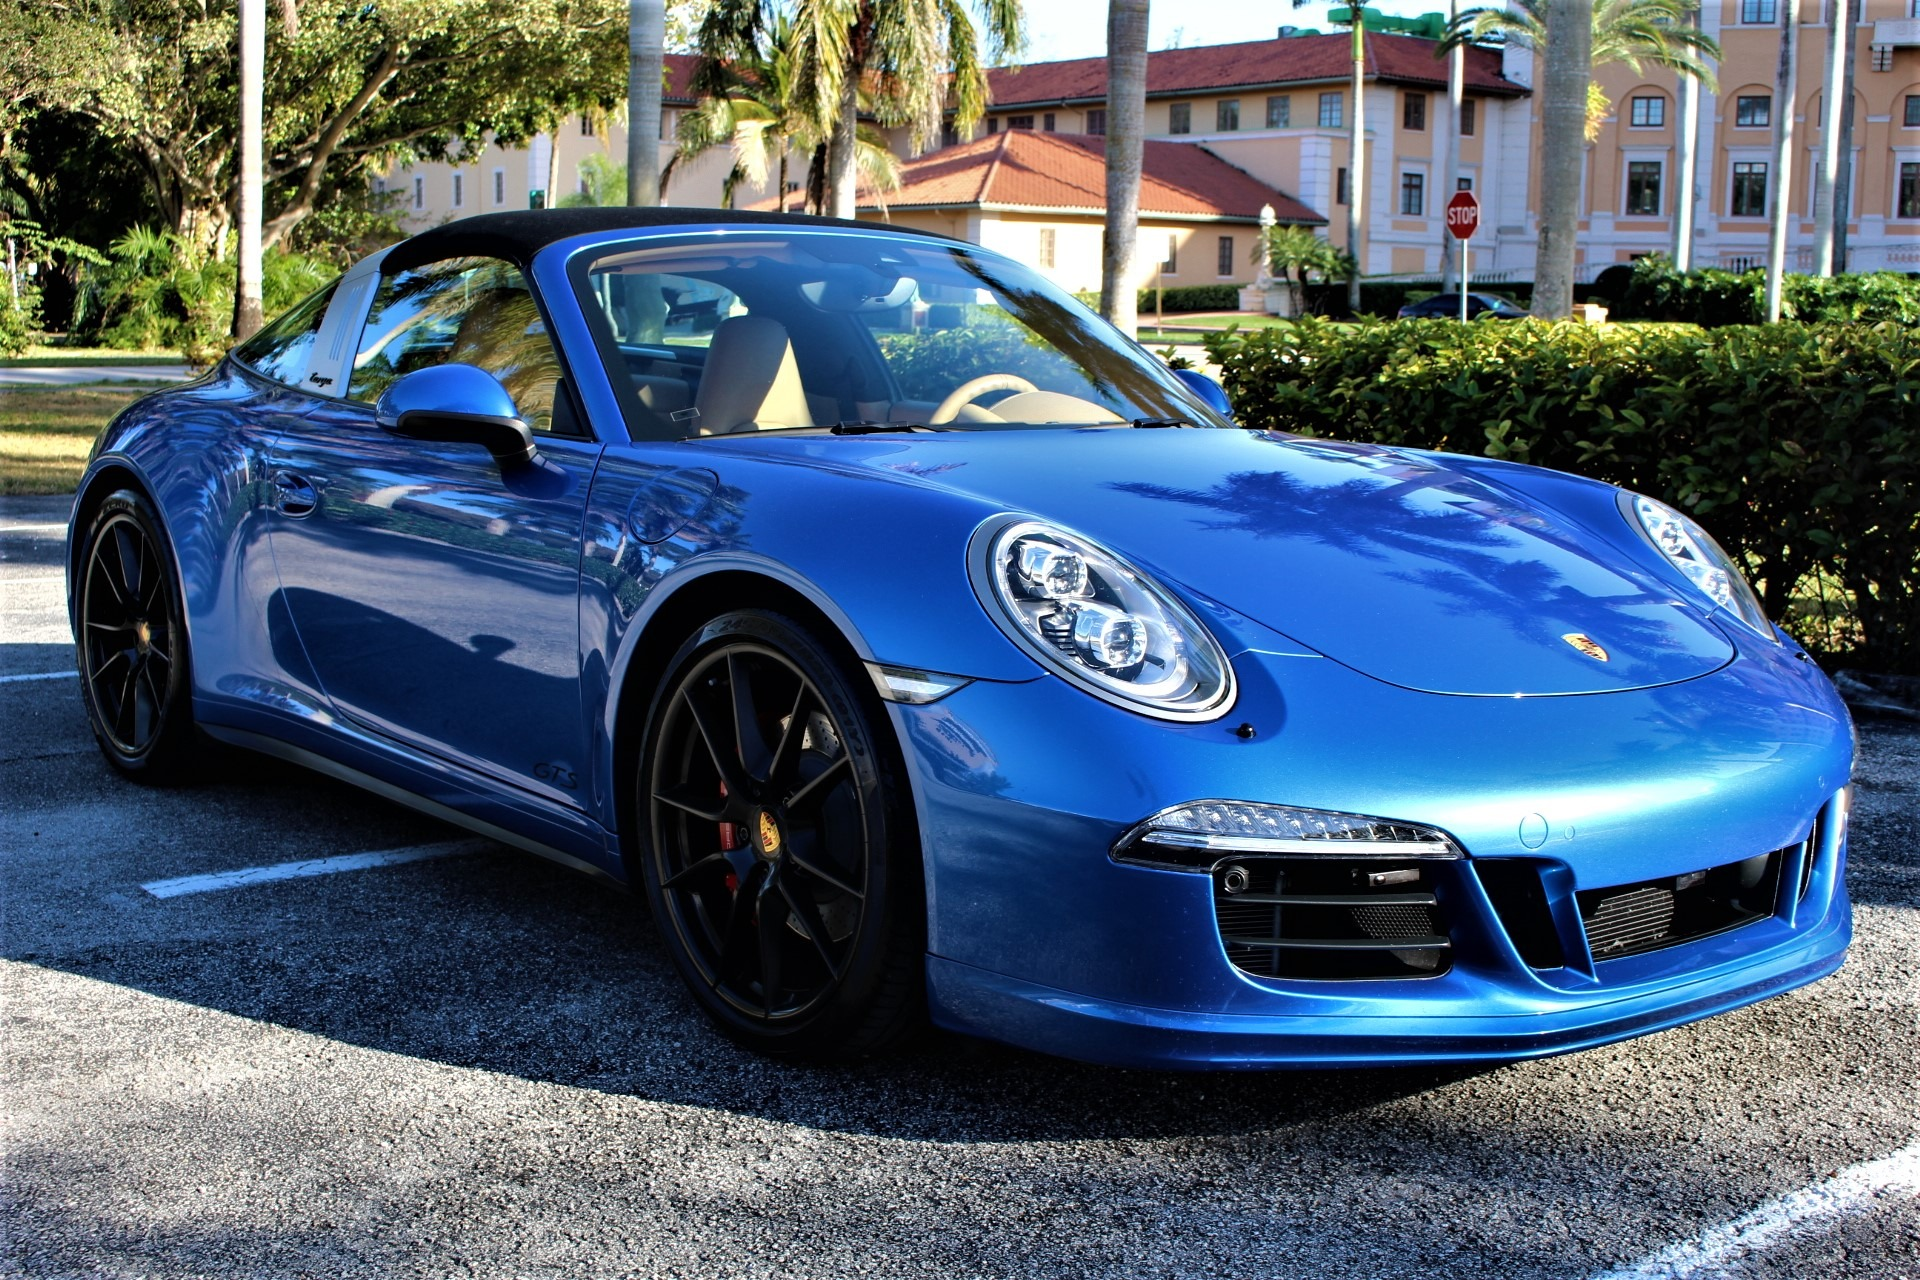 Used 2016 Porsche 911 Targa 4 GTS for sale $119,850 at The Gables Sports Cars in Miami FL 33146 3